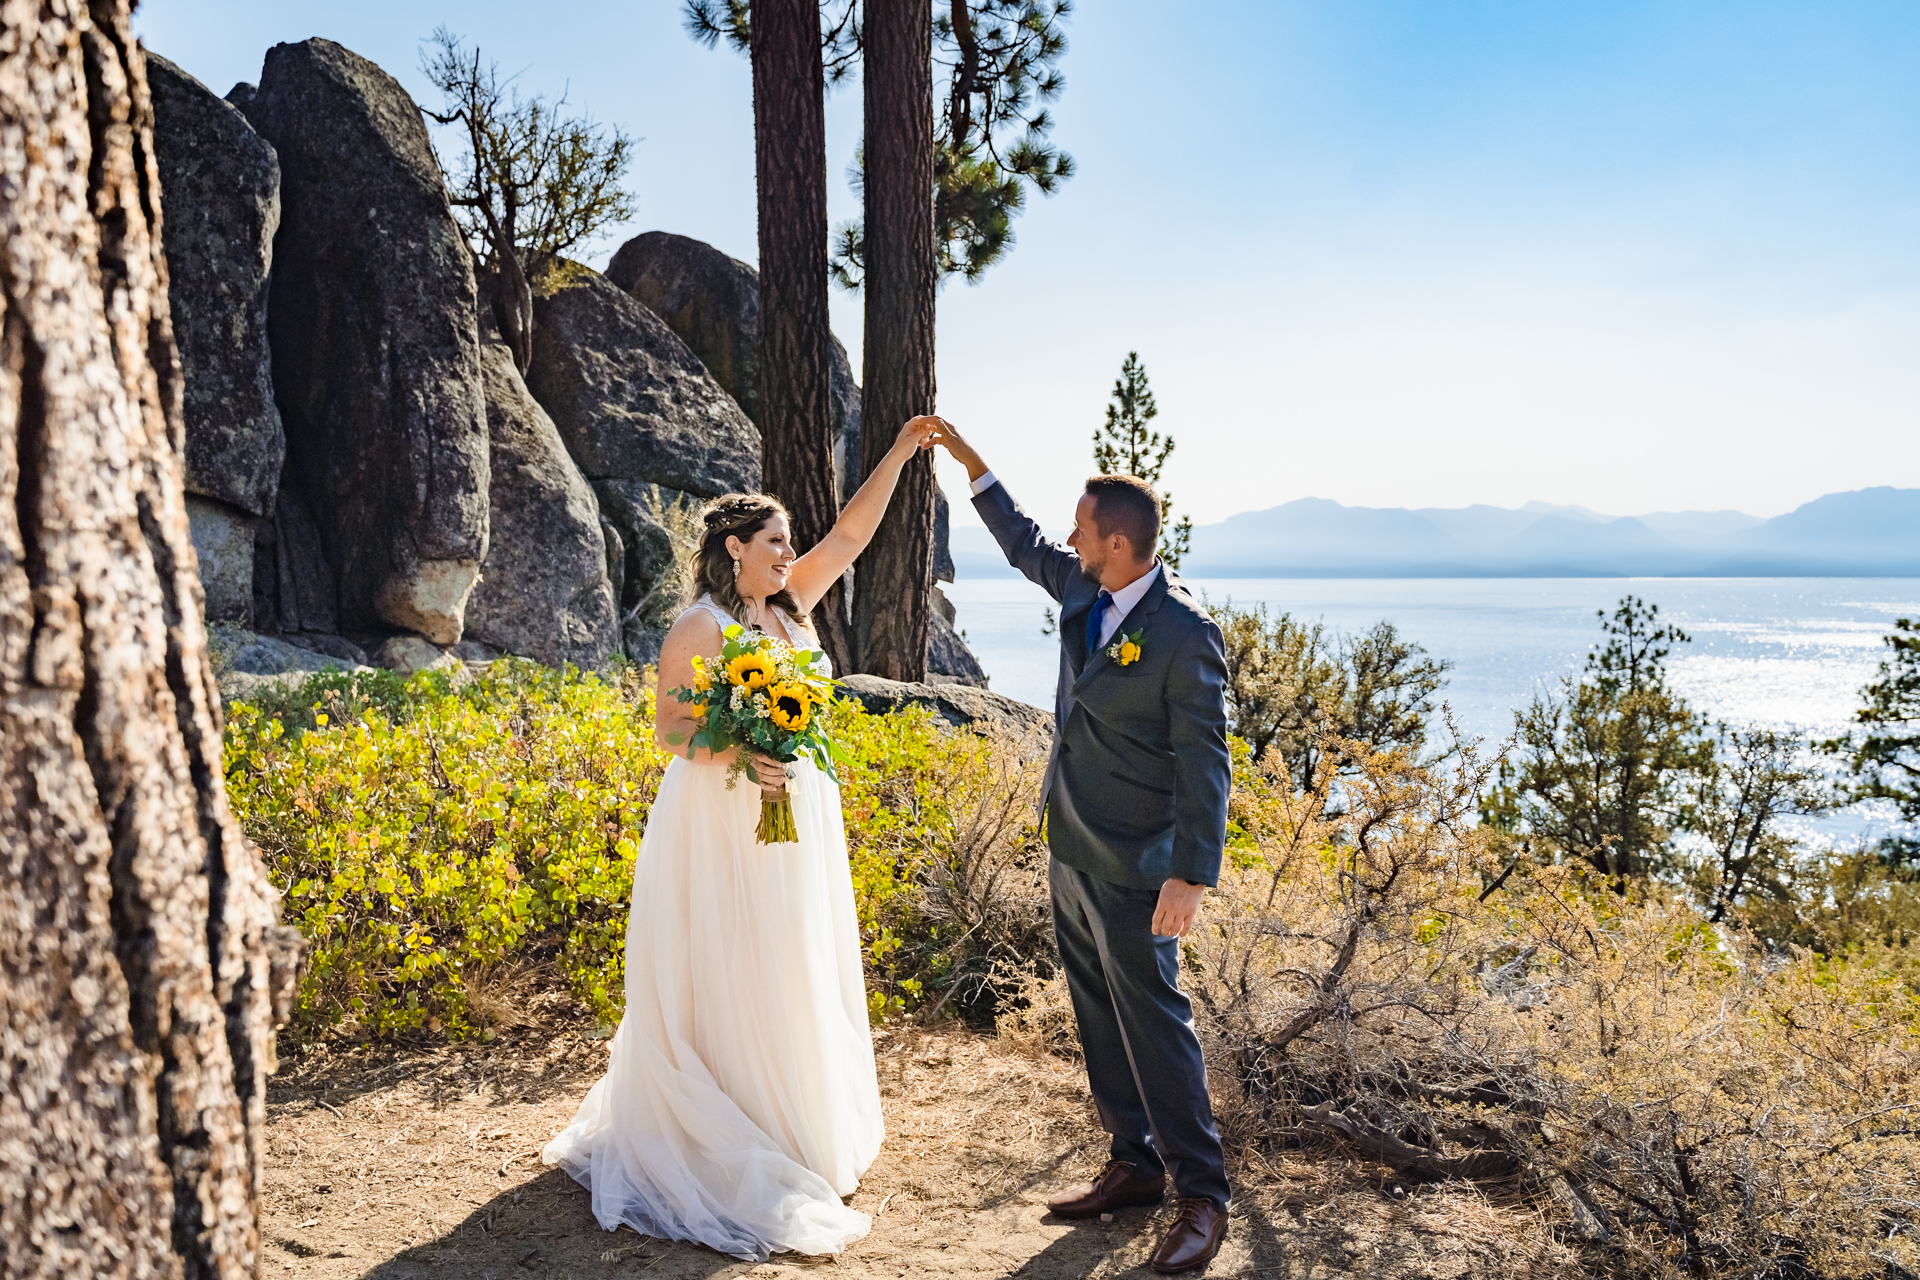 Logan Shoals, Zephyr Cove, NV Wedding Couple Pic | The bride wanted to go see the vista